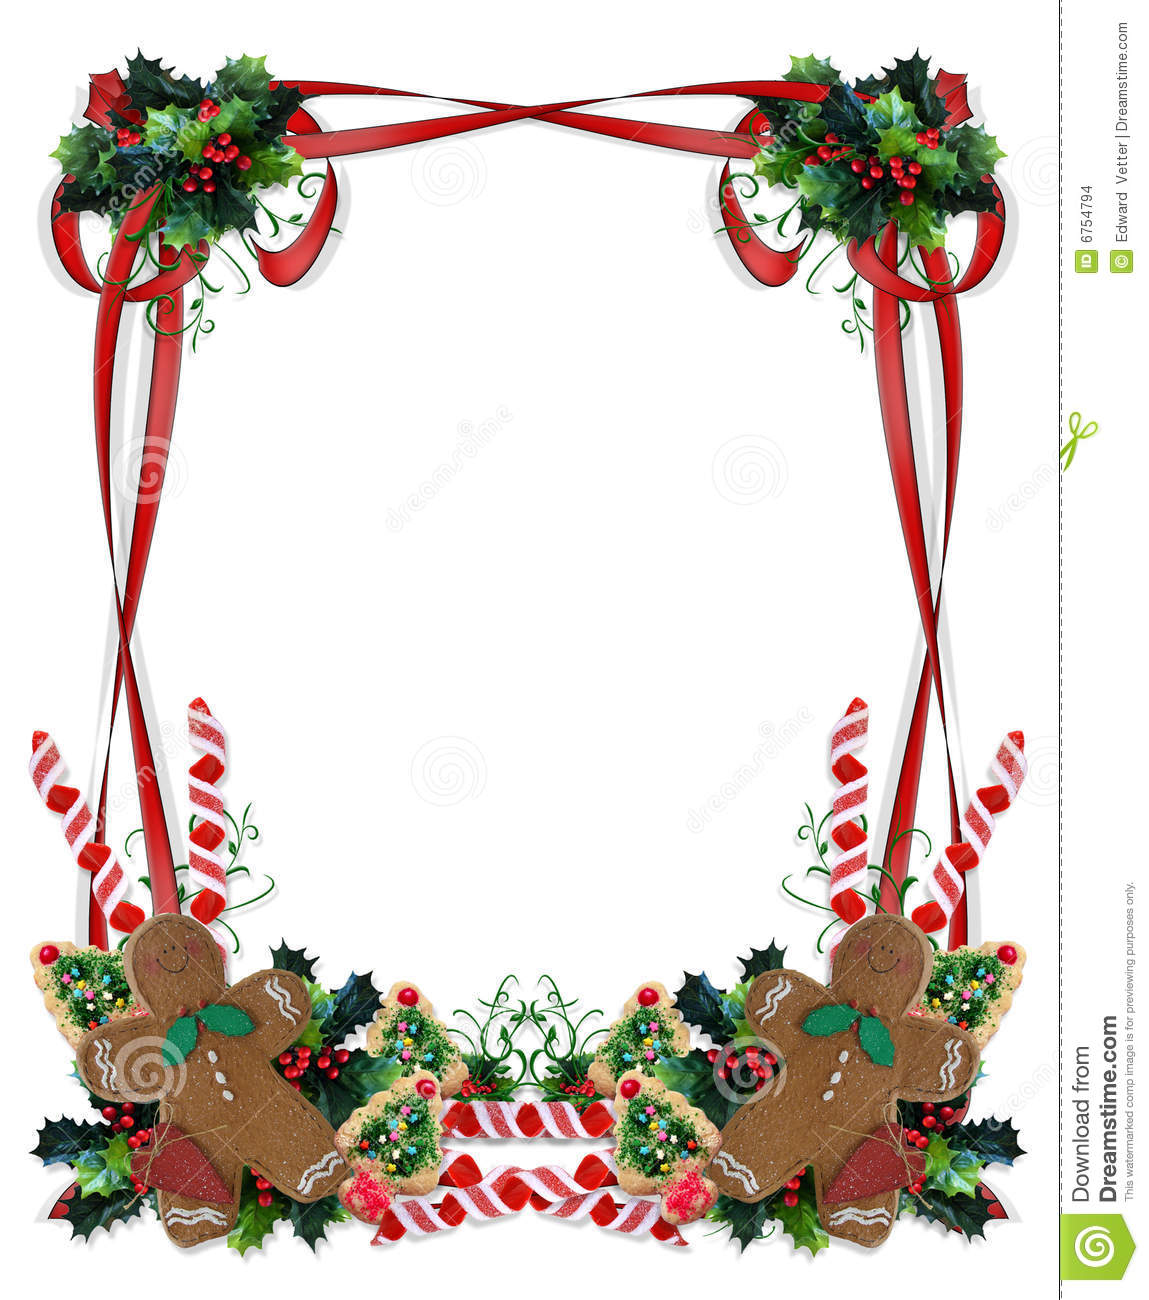 Christmas cookie border clip art images amp pictures becuo